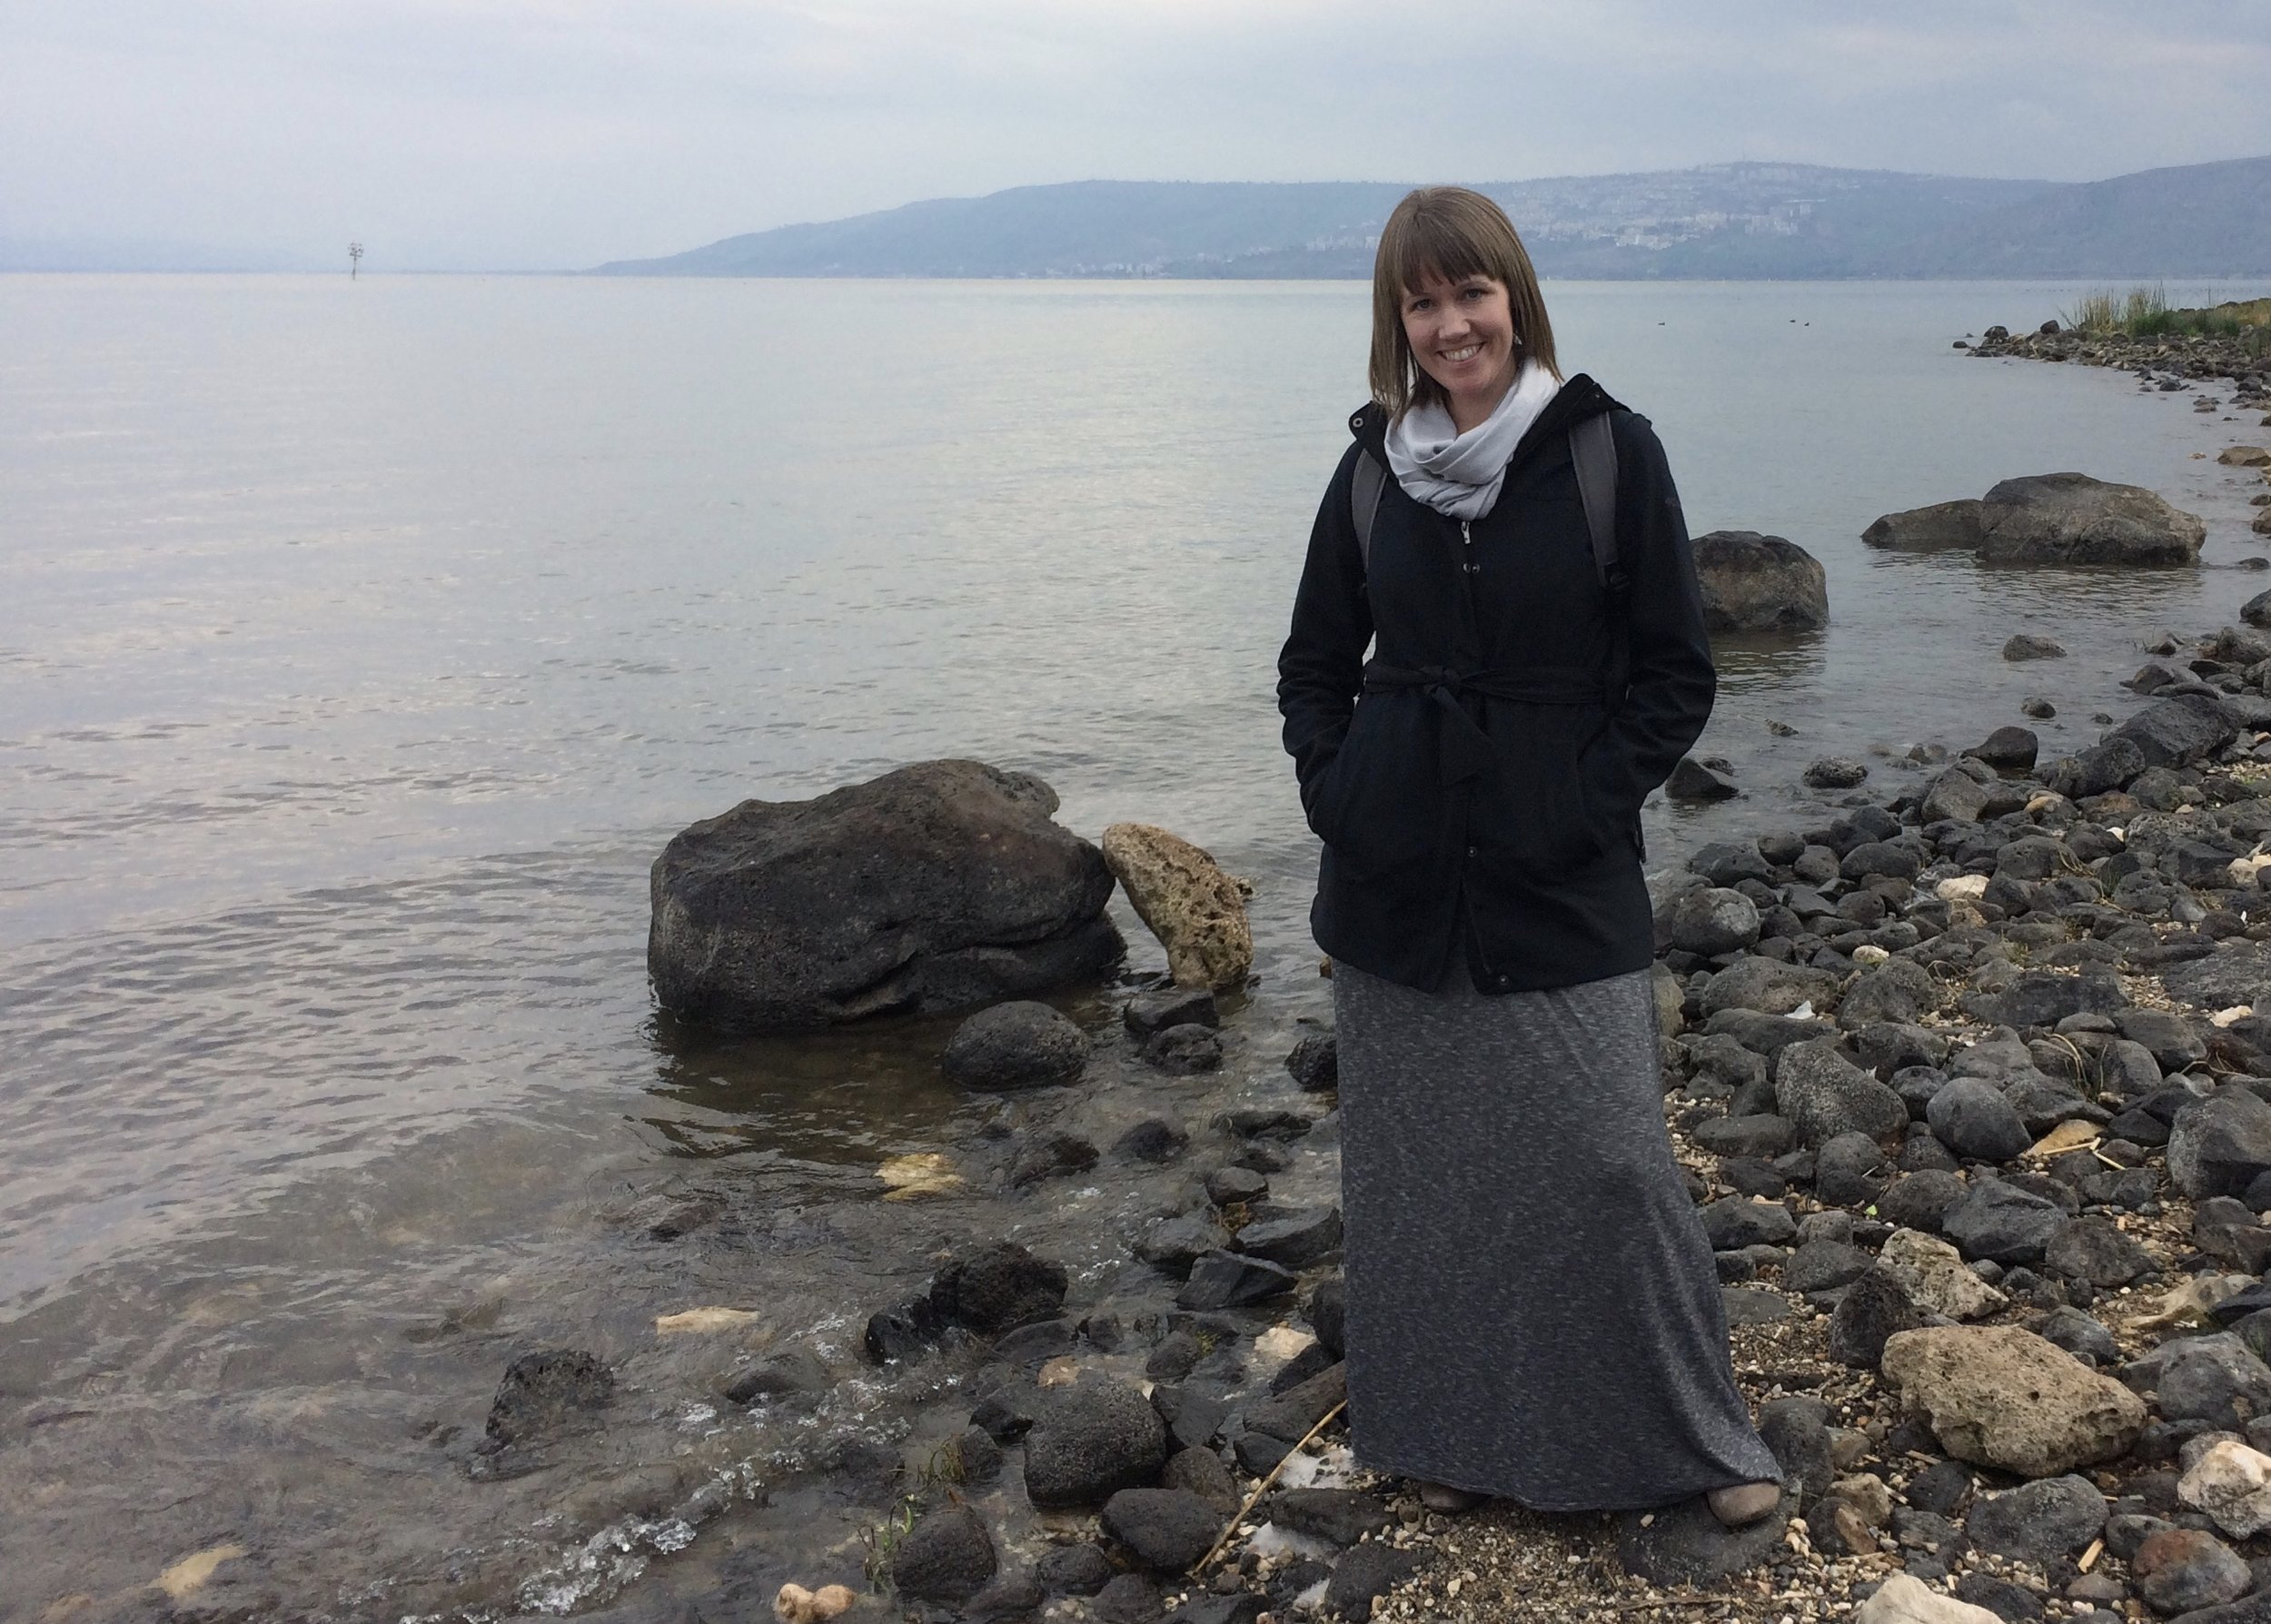 Marie on the shore of the Sea of Galilee